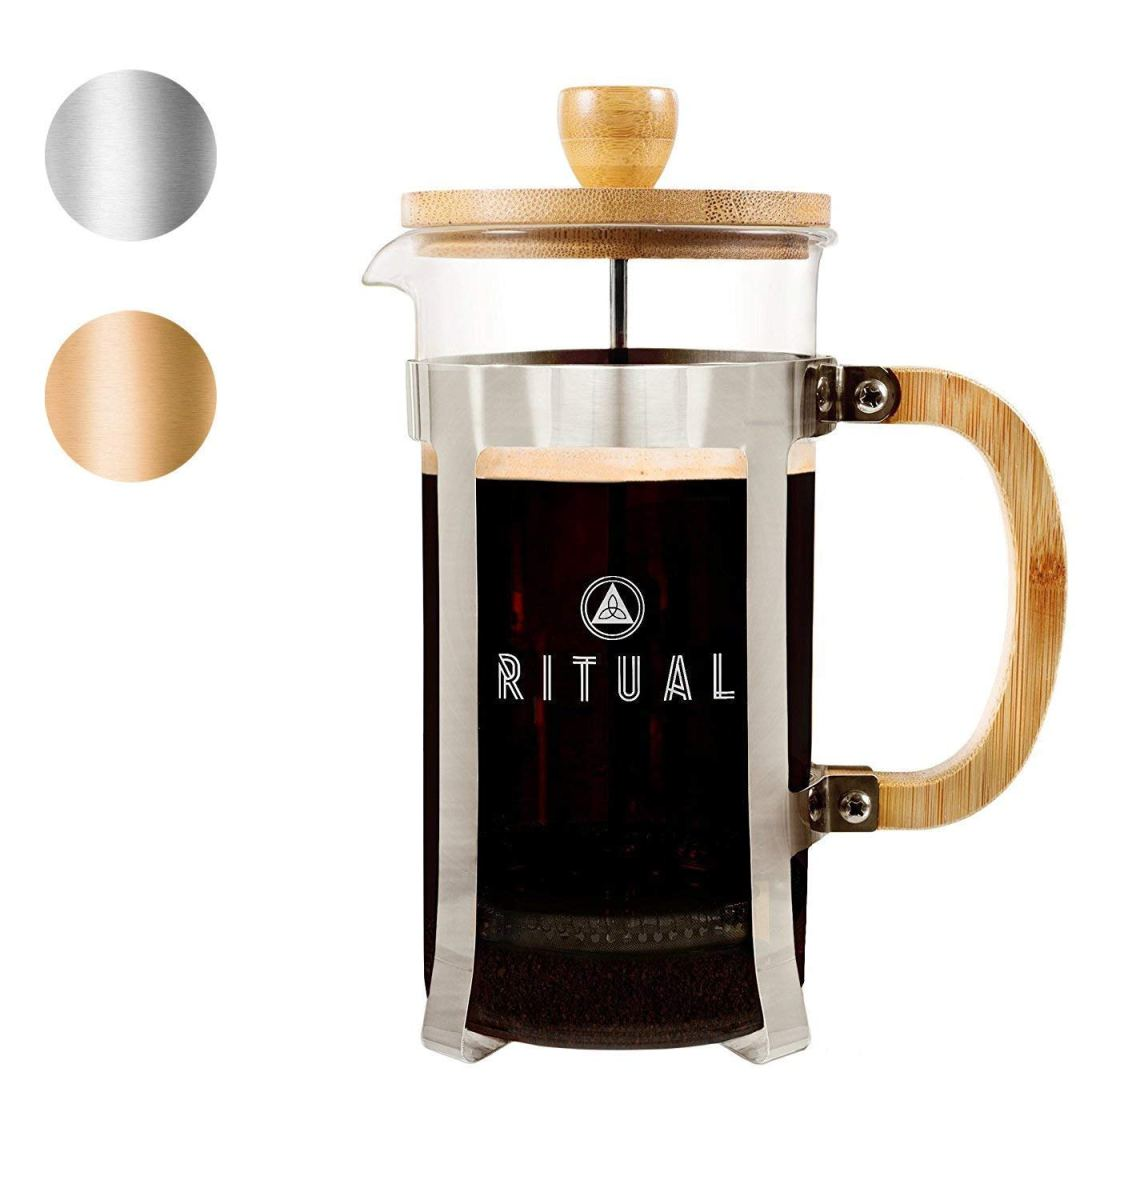 Retual French Coffee Press